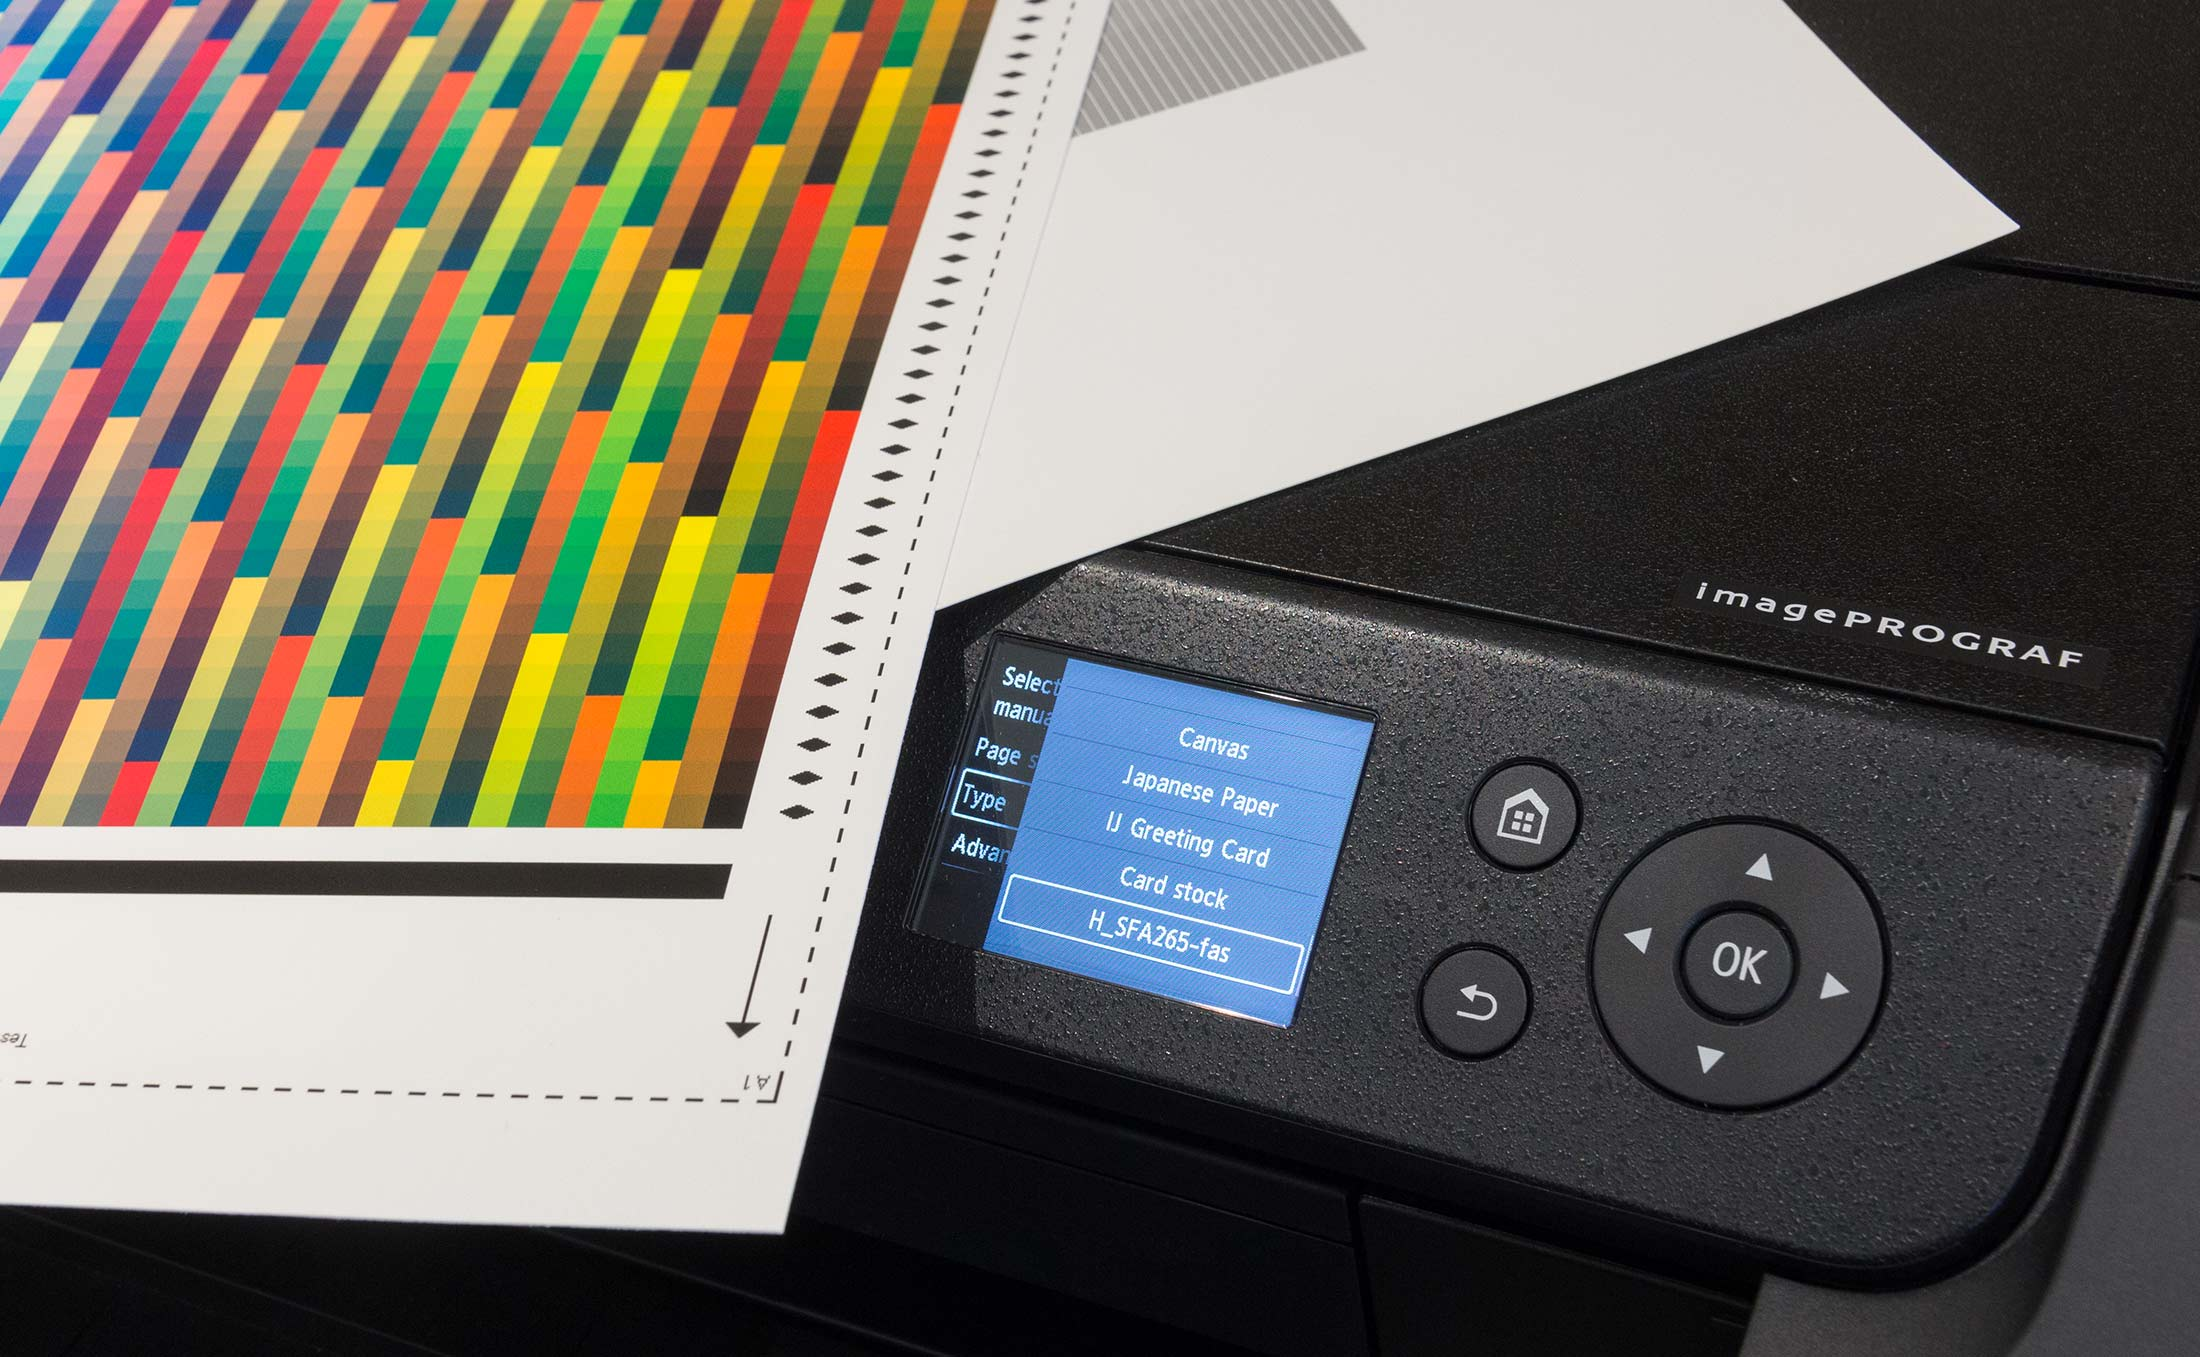 custom-paper-setting-on-printer